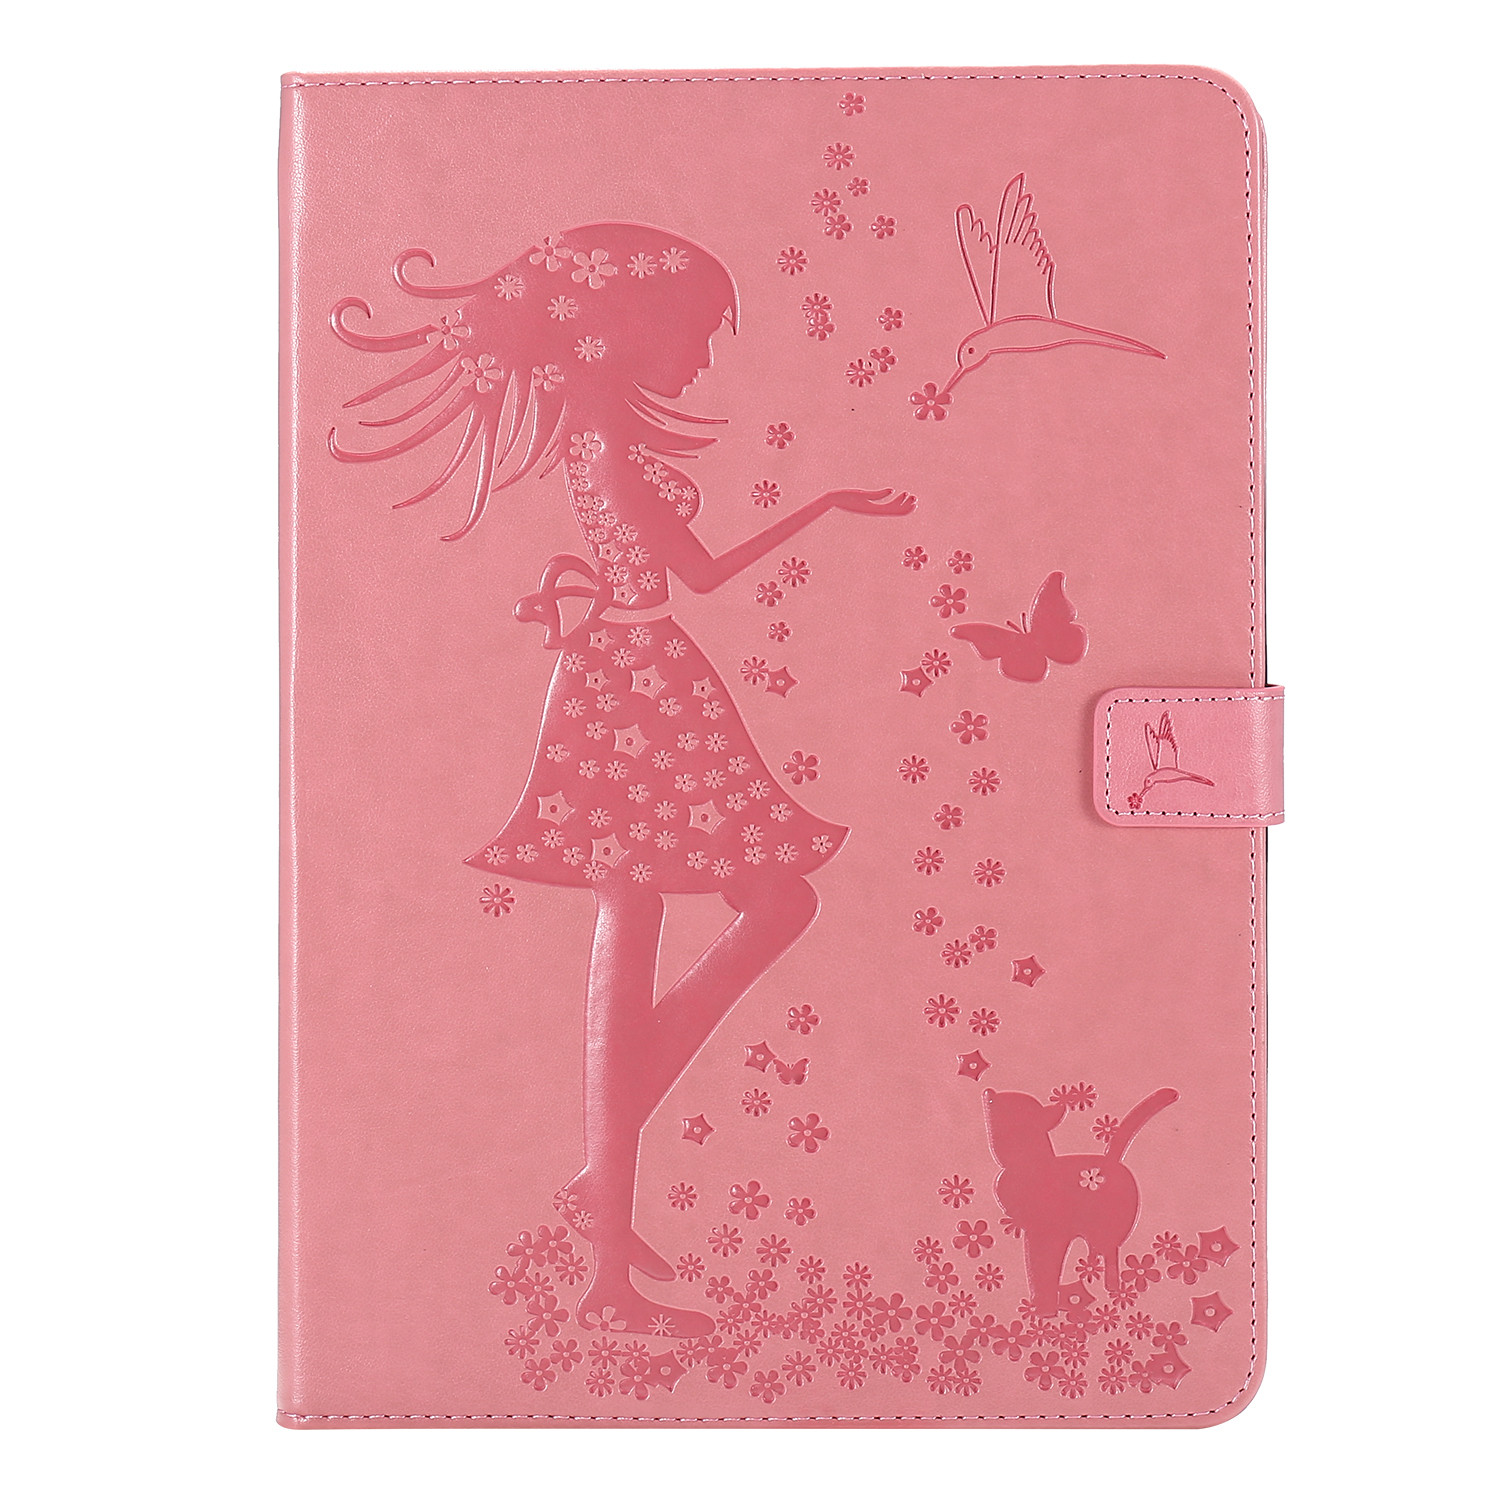 1 White For iPad 4th Gen 12 9 Cover 2020 Funda Cover Stand Leather Shell Folio Protective Case